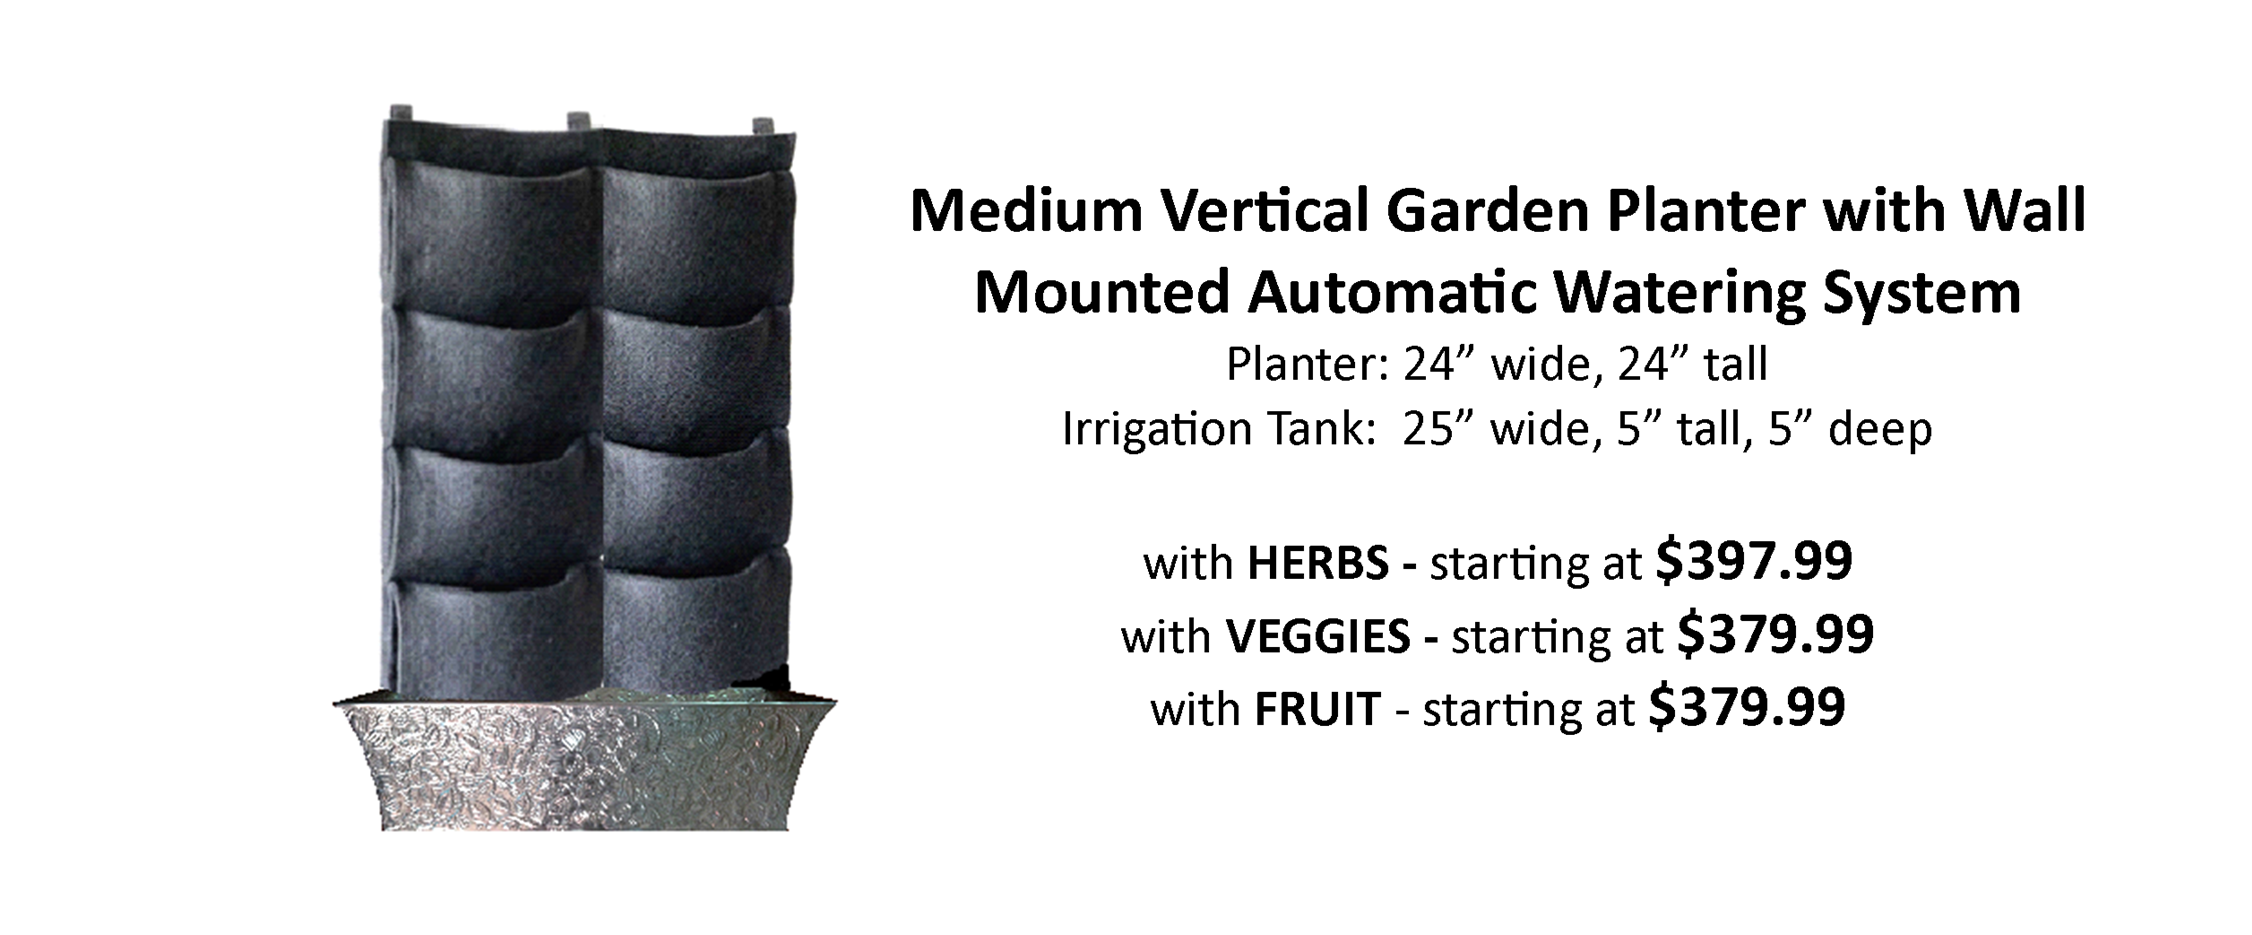 Automatically Watered Living Wall Kit Pre Planted with Herbs Vegetables and Fruit